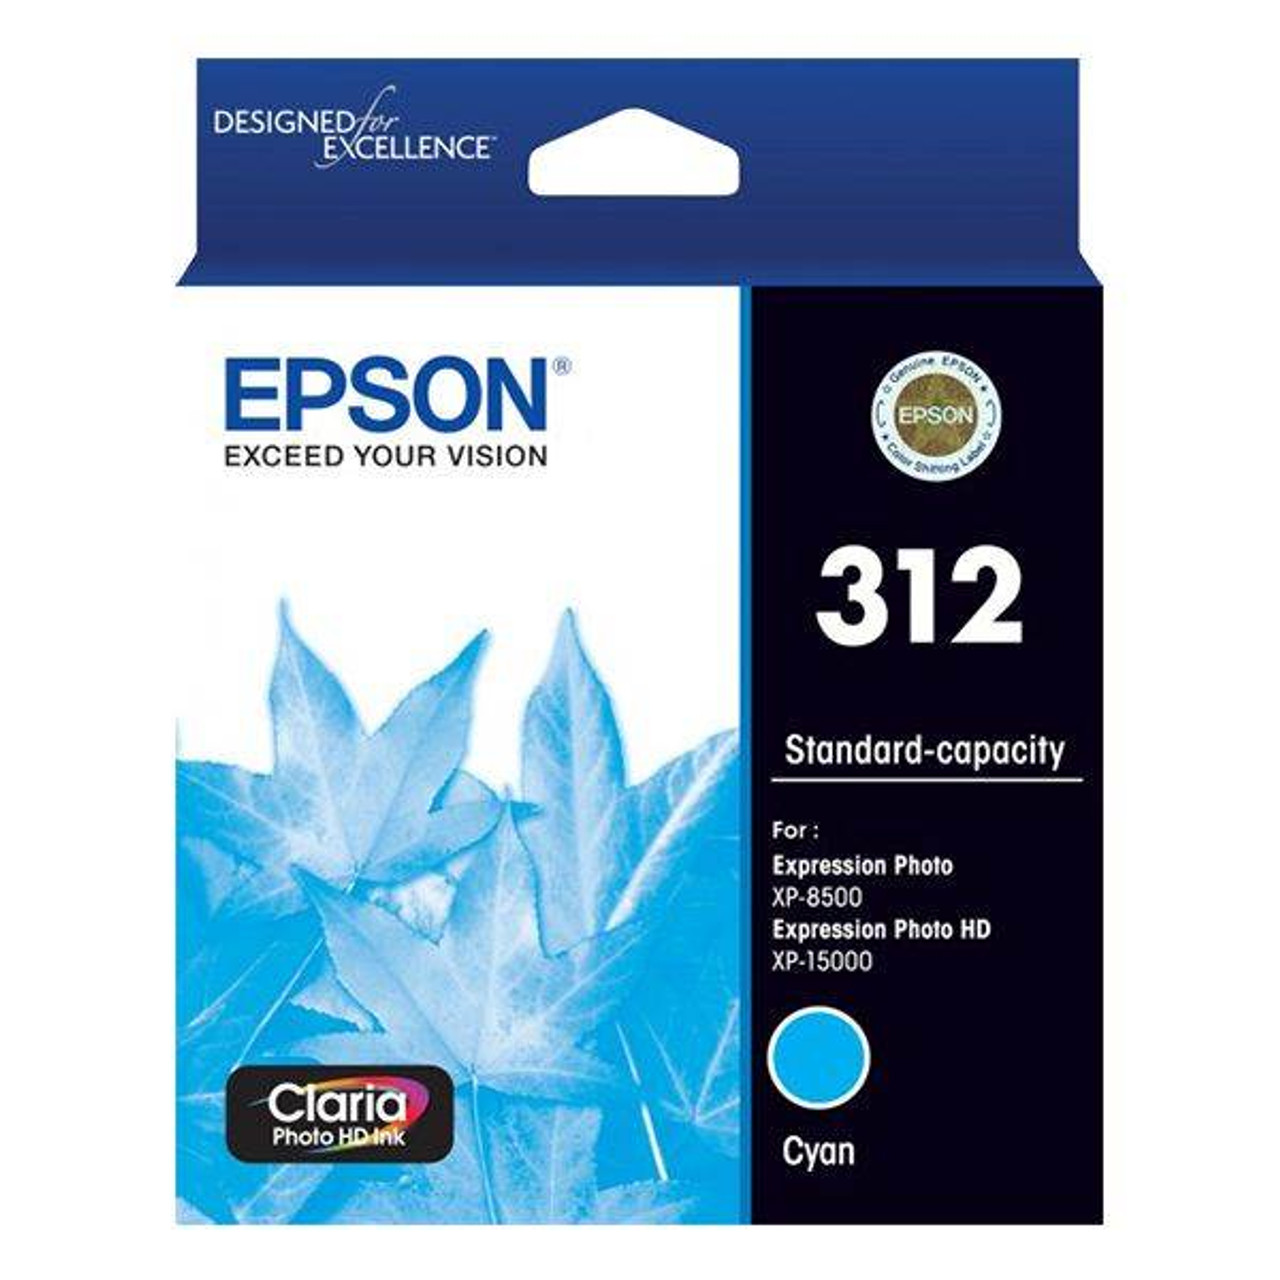 Image for Epson 312 Standard Capacity Claria Photo HD Cyan Ink Cartridge CX Computer Superstore